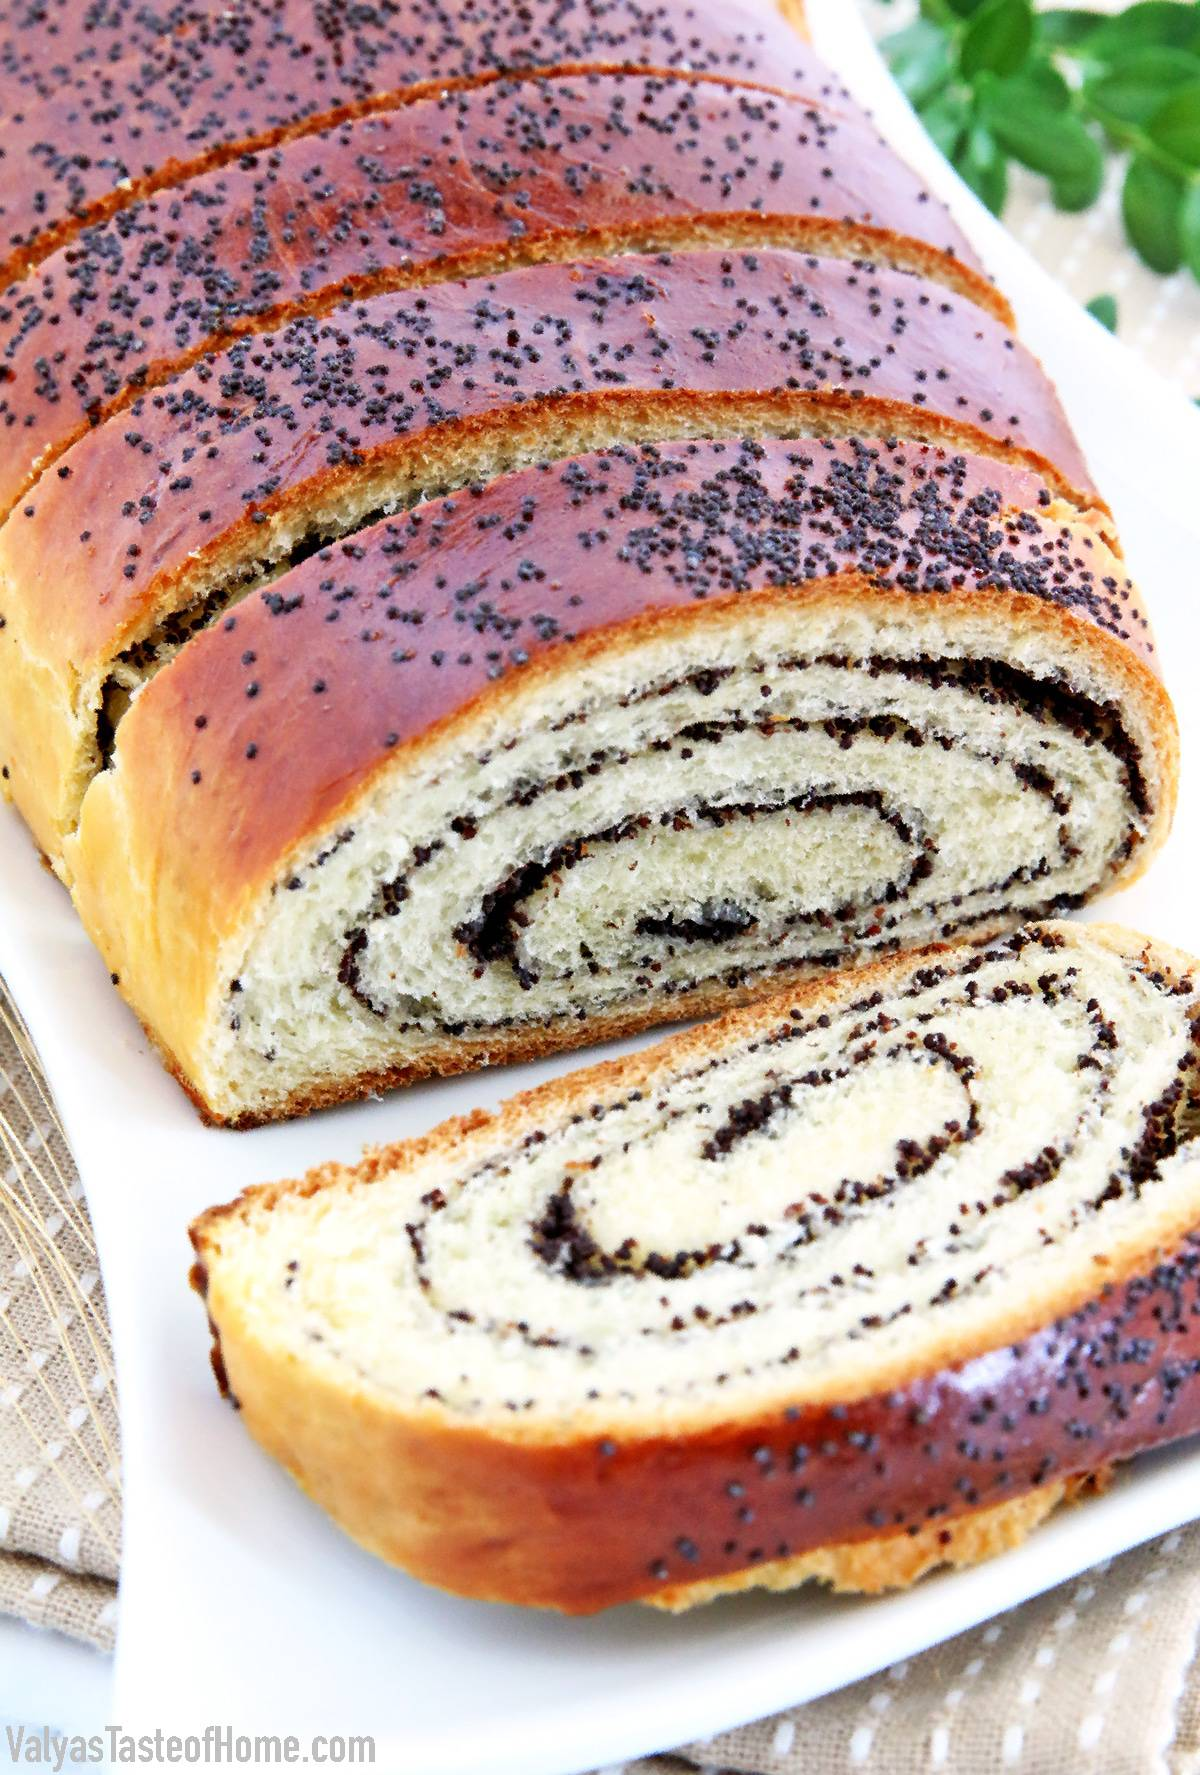 Finally, I'm sharing an age-old Easy Poppy Seed Roll Recipe that never gets old. This is a very special traditional recipe that has been handed down in my family for more years than I can even trace back. Pillow-soft, moist, and so flavorsome. Words even fail to describe how scrumptious it is. #macowiec #poppyseedroll #sweetyeastbread #valyastasteofhome